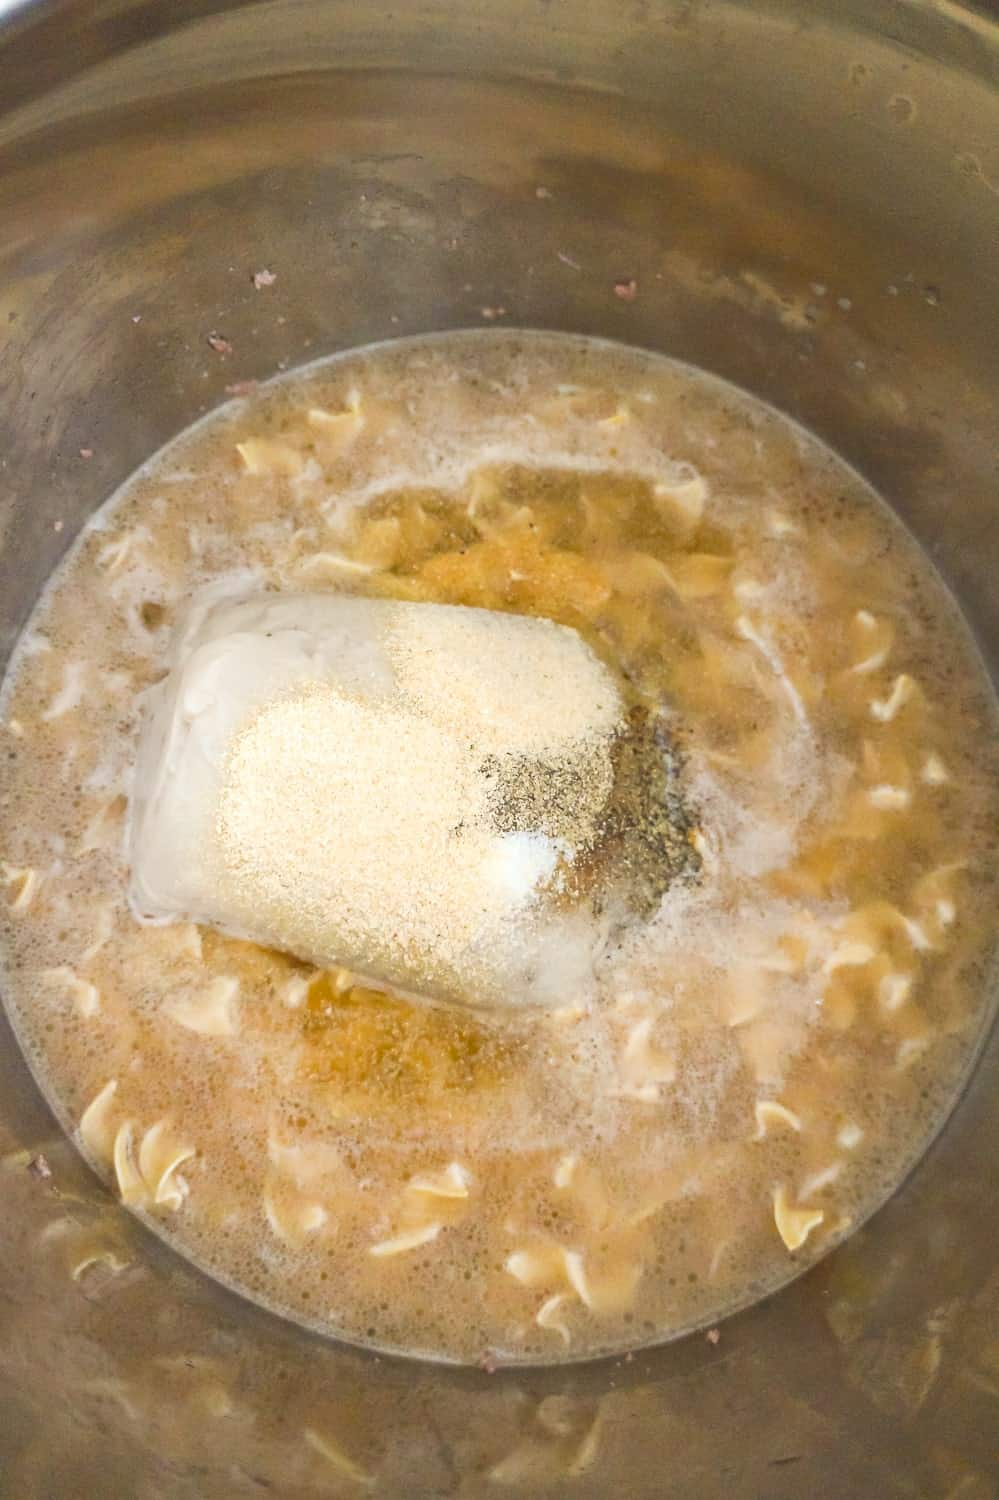 condensed cream of mushroom soup, spices, egg noodles and liquid in an Instant POt